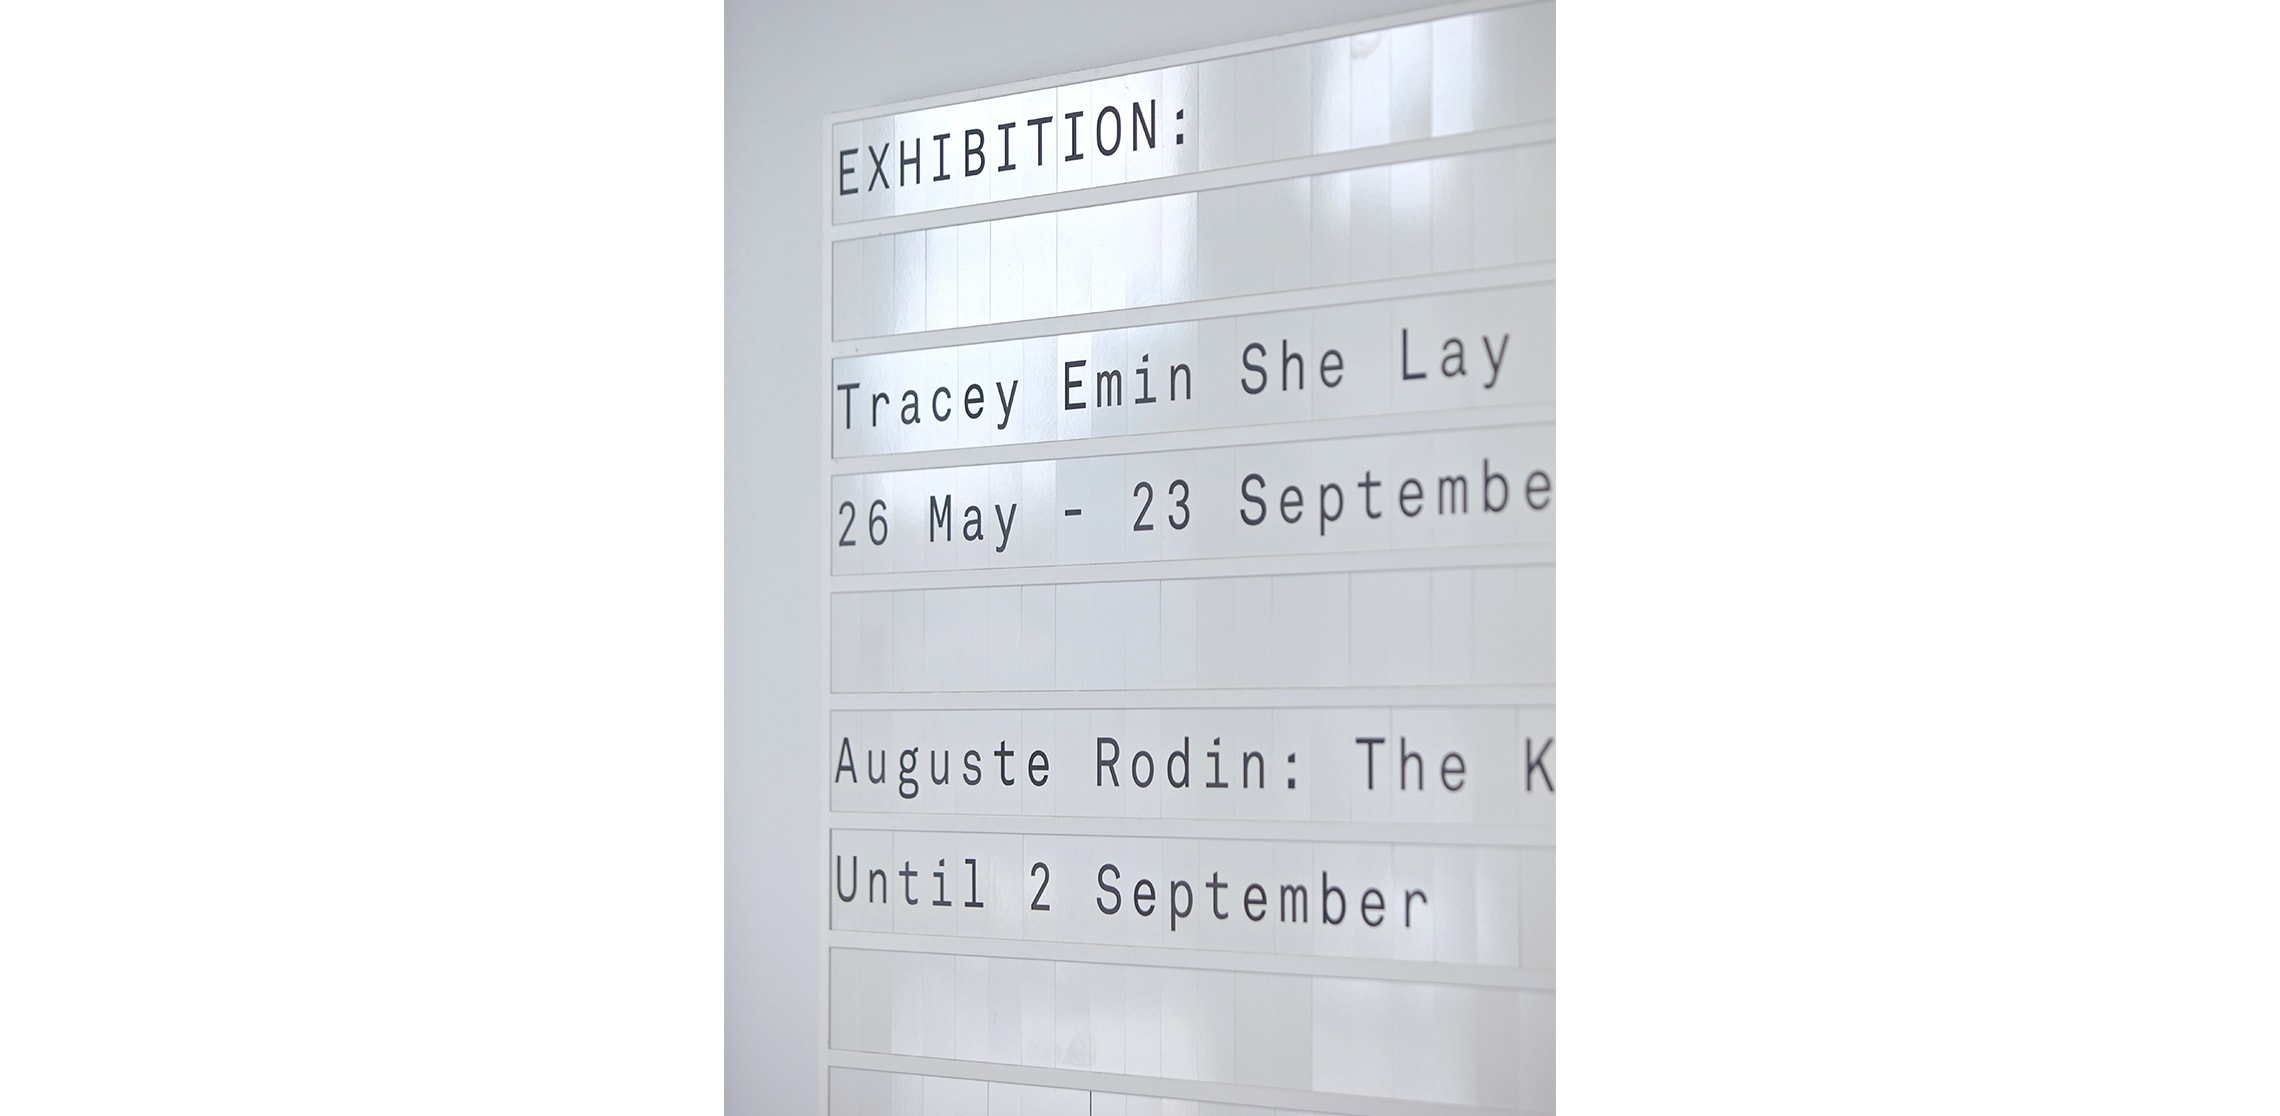 Gallery signage